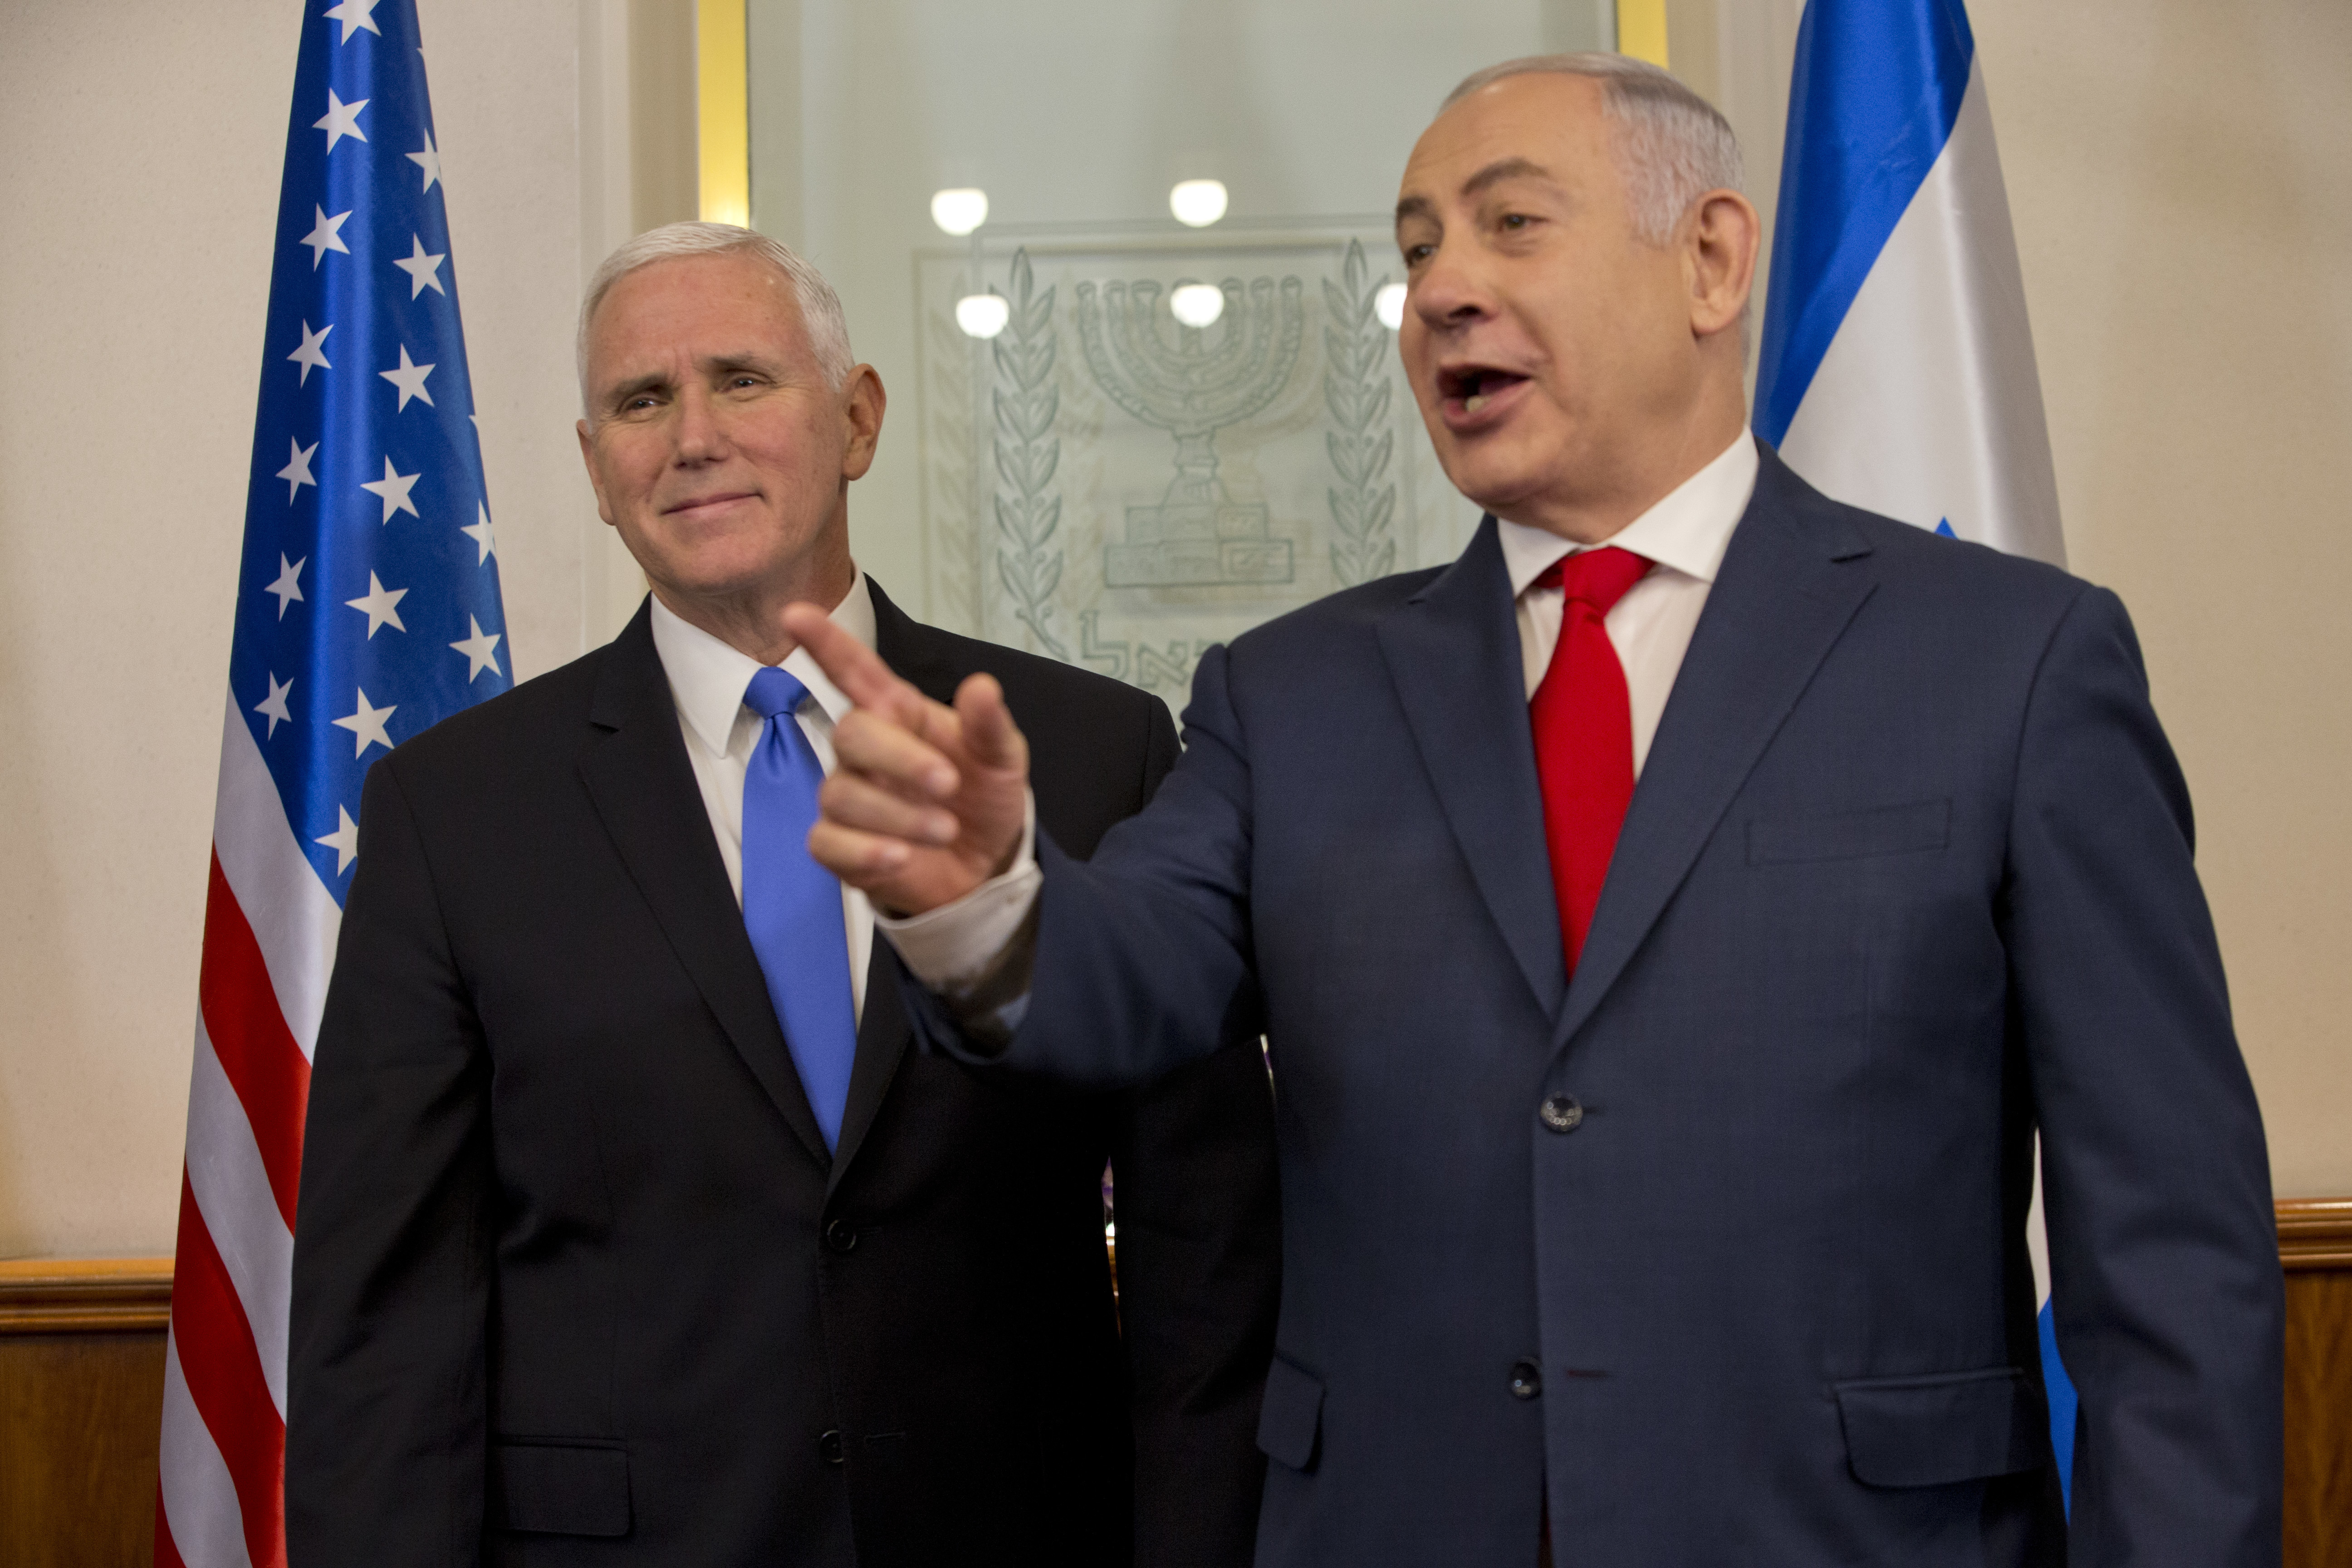 Vice President Mike Pence meets with Israel's Prime Minister Benjamin Netanyahu in Jerusalem, Monday, Jan. 22, 2018. (Ariel Schalit/AP)